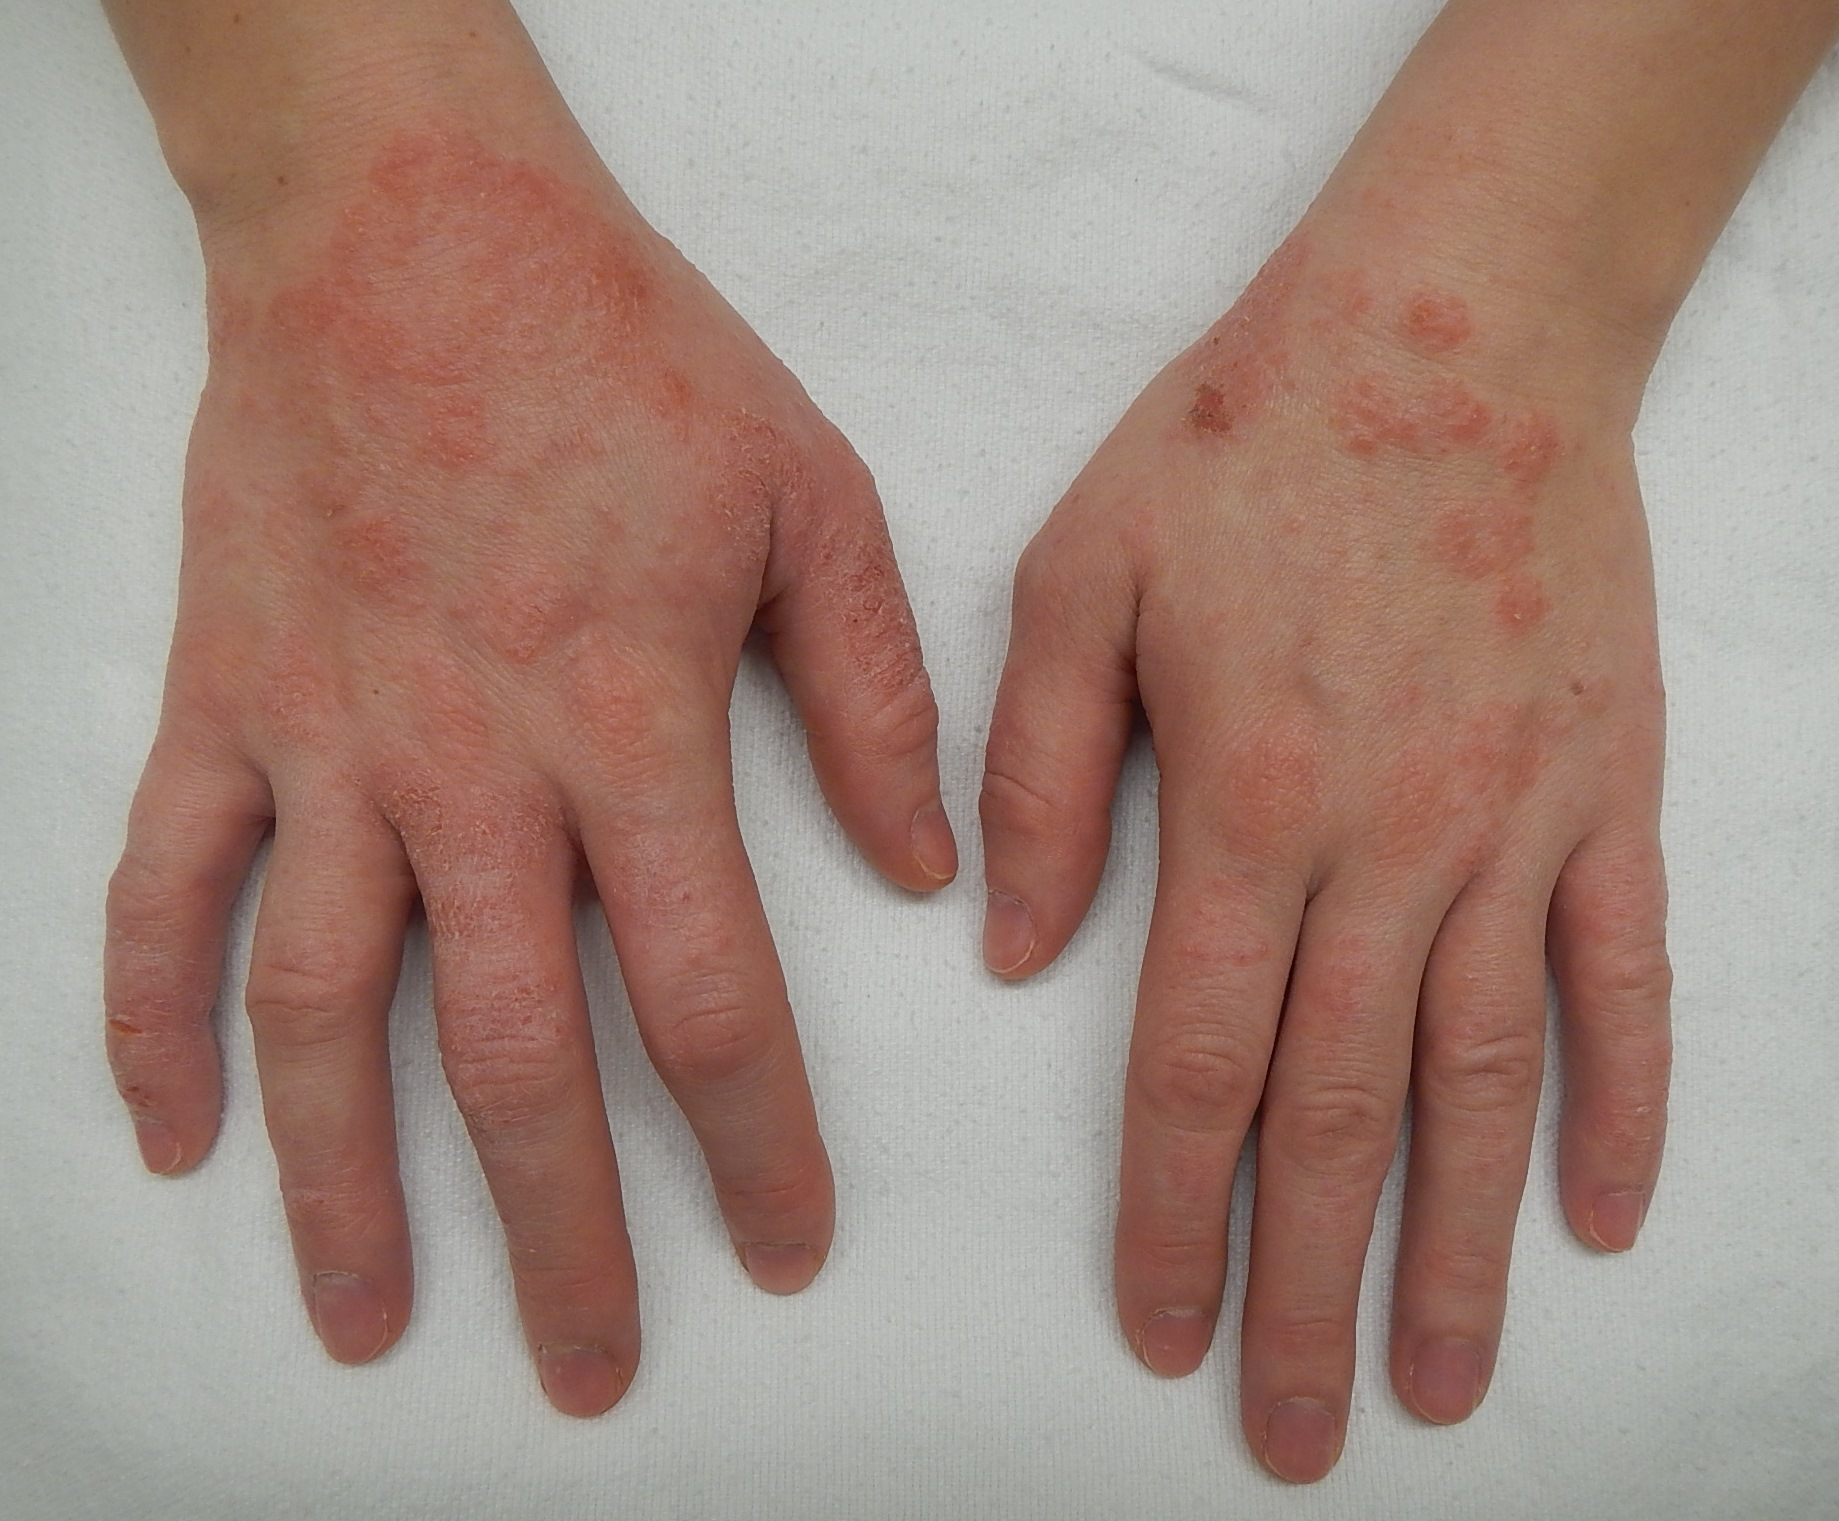 Dermatitis - Wikipedia